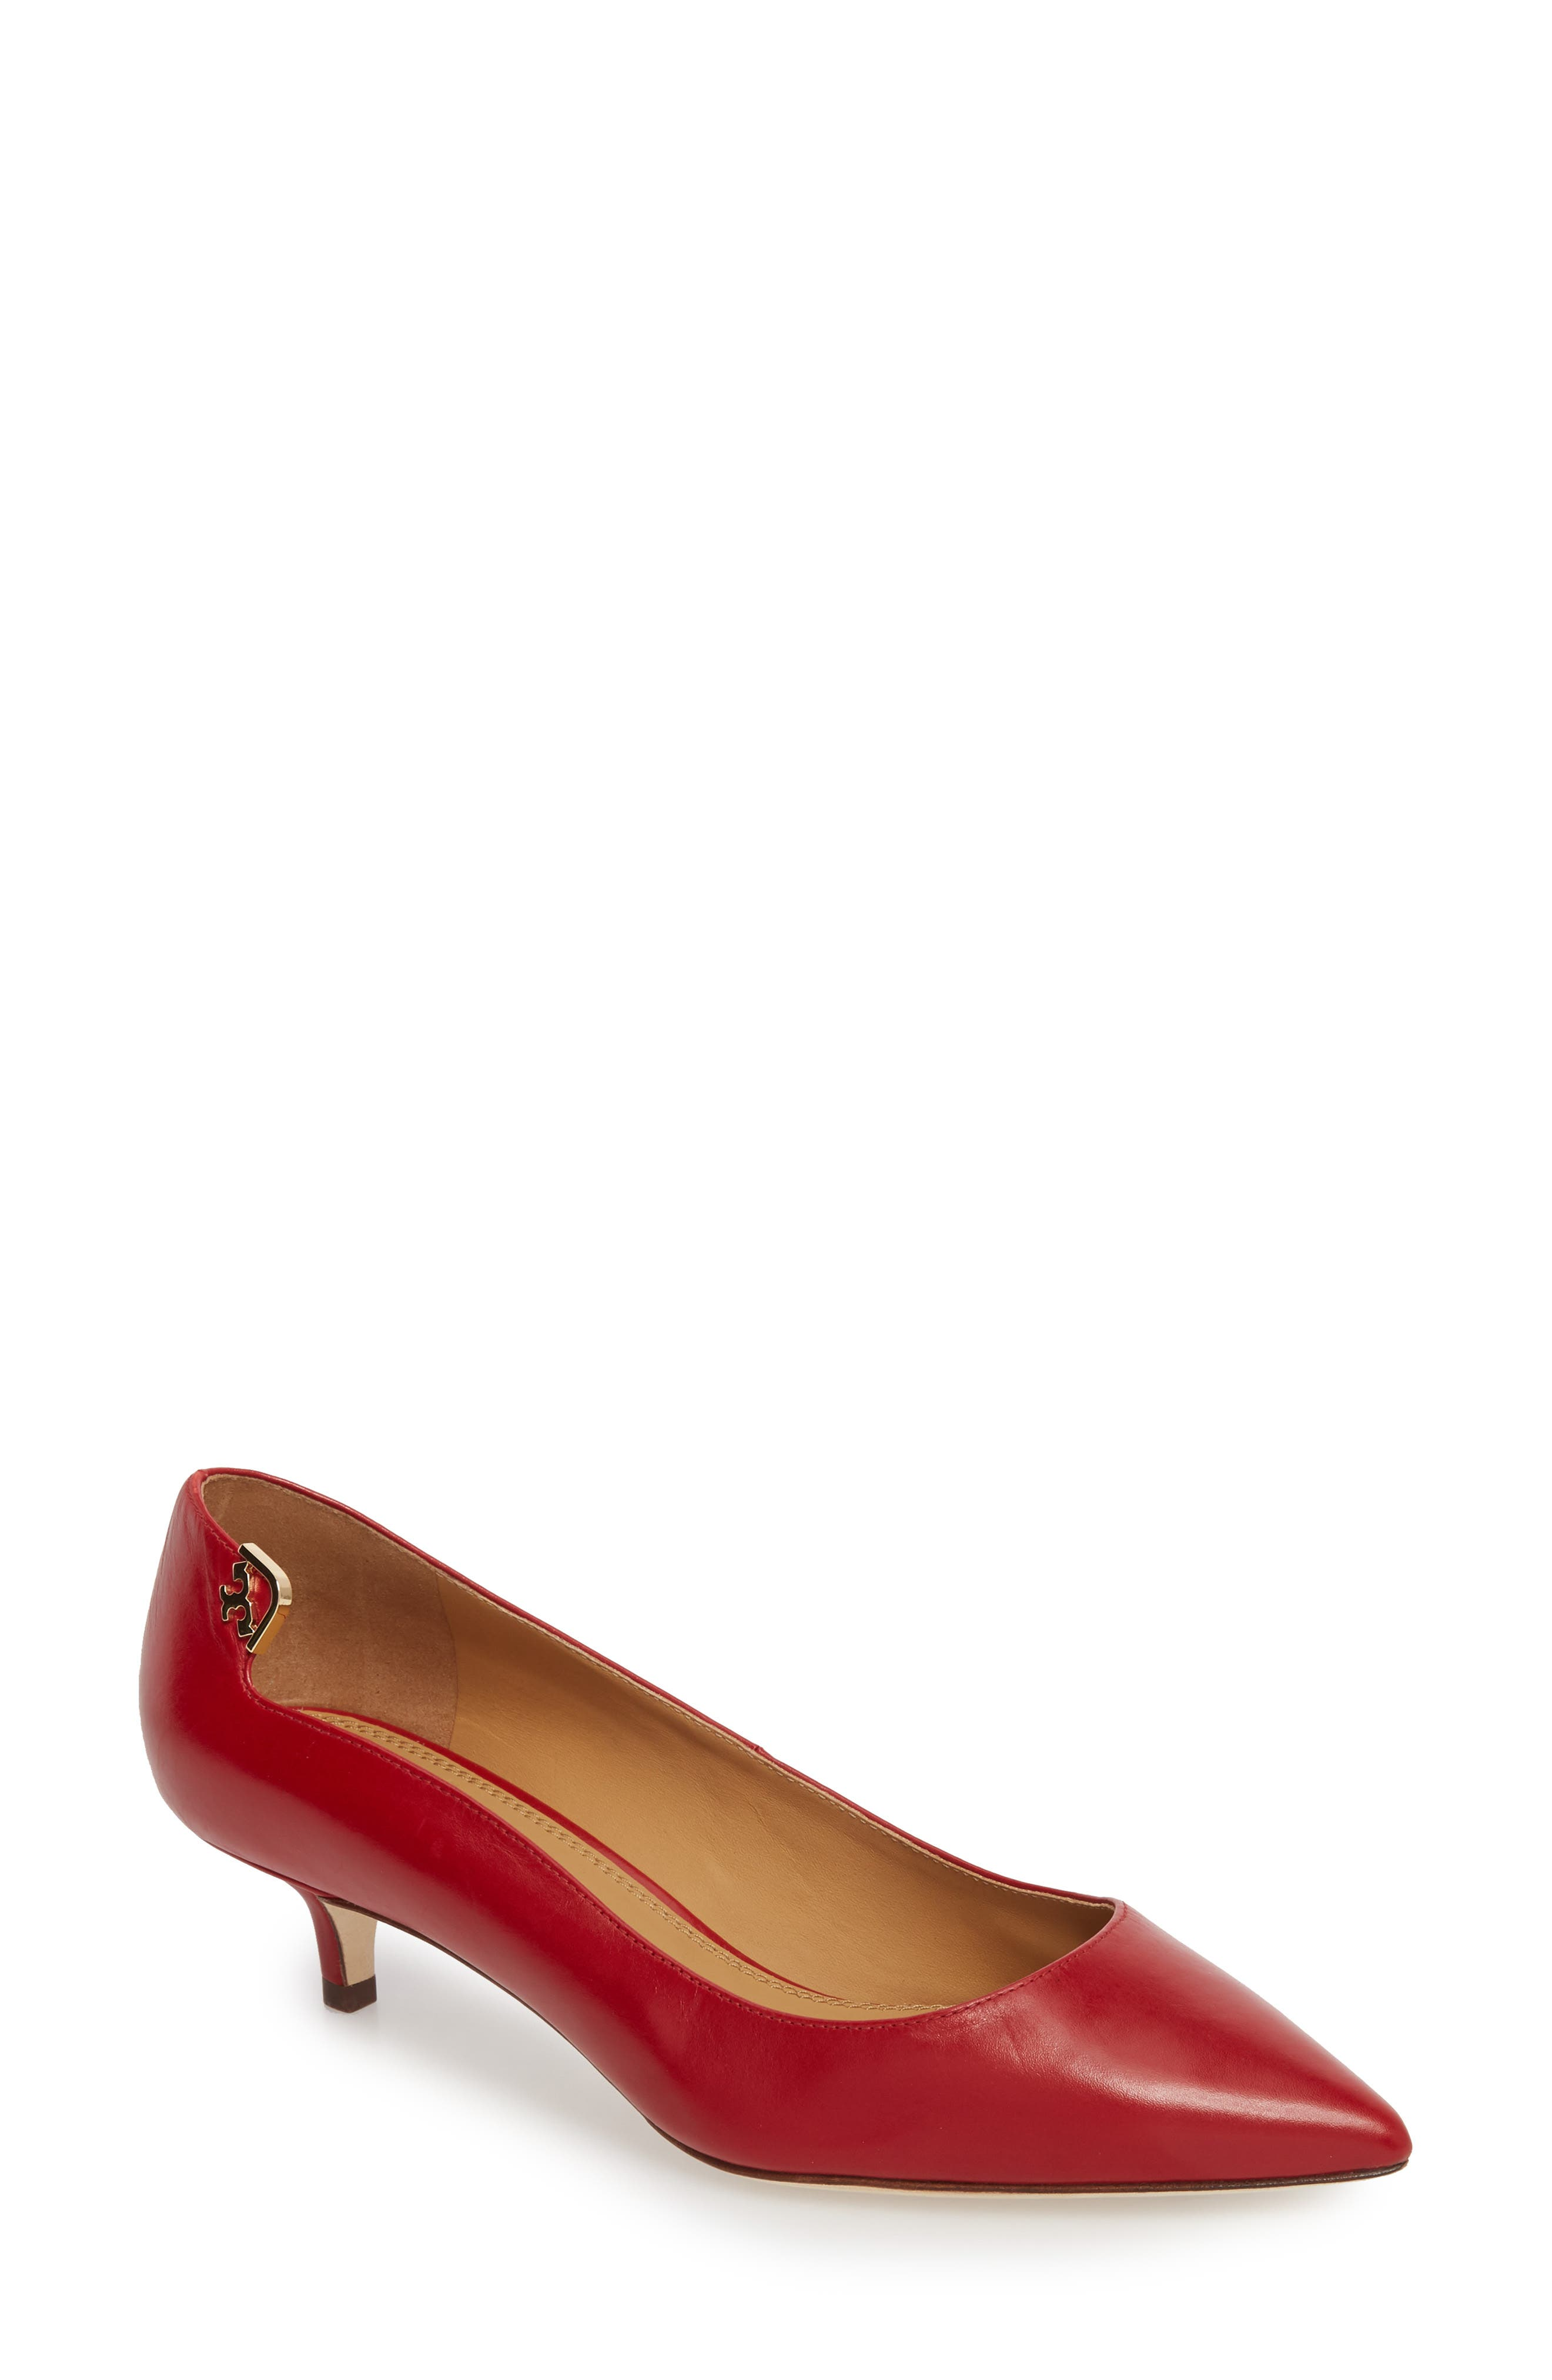 TORY BURCH Elizabeth Pointy Toe Pump, Main, color, 601